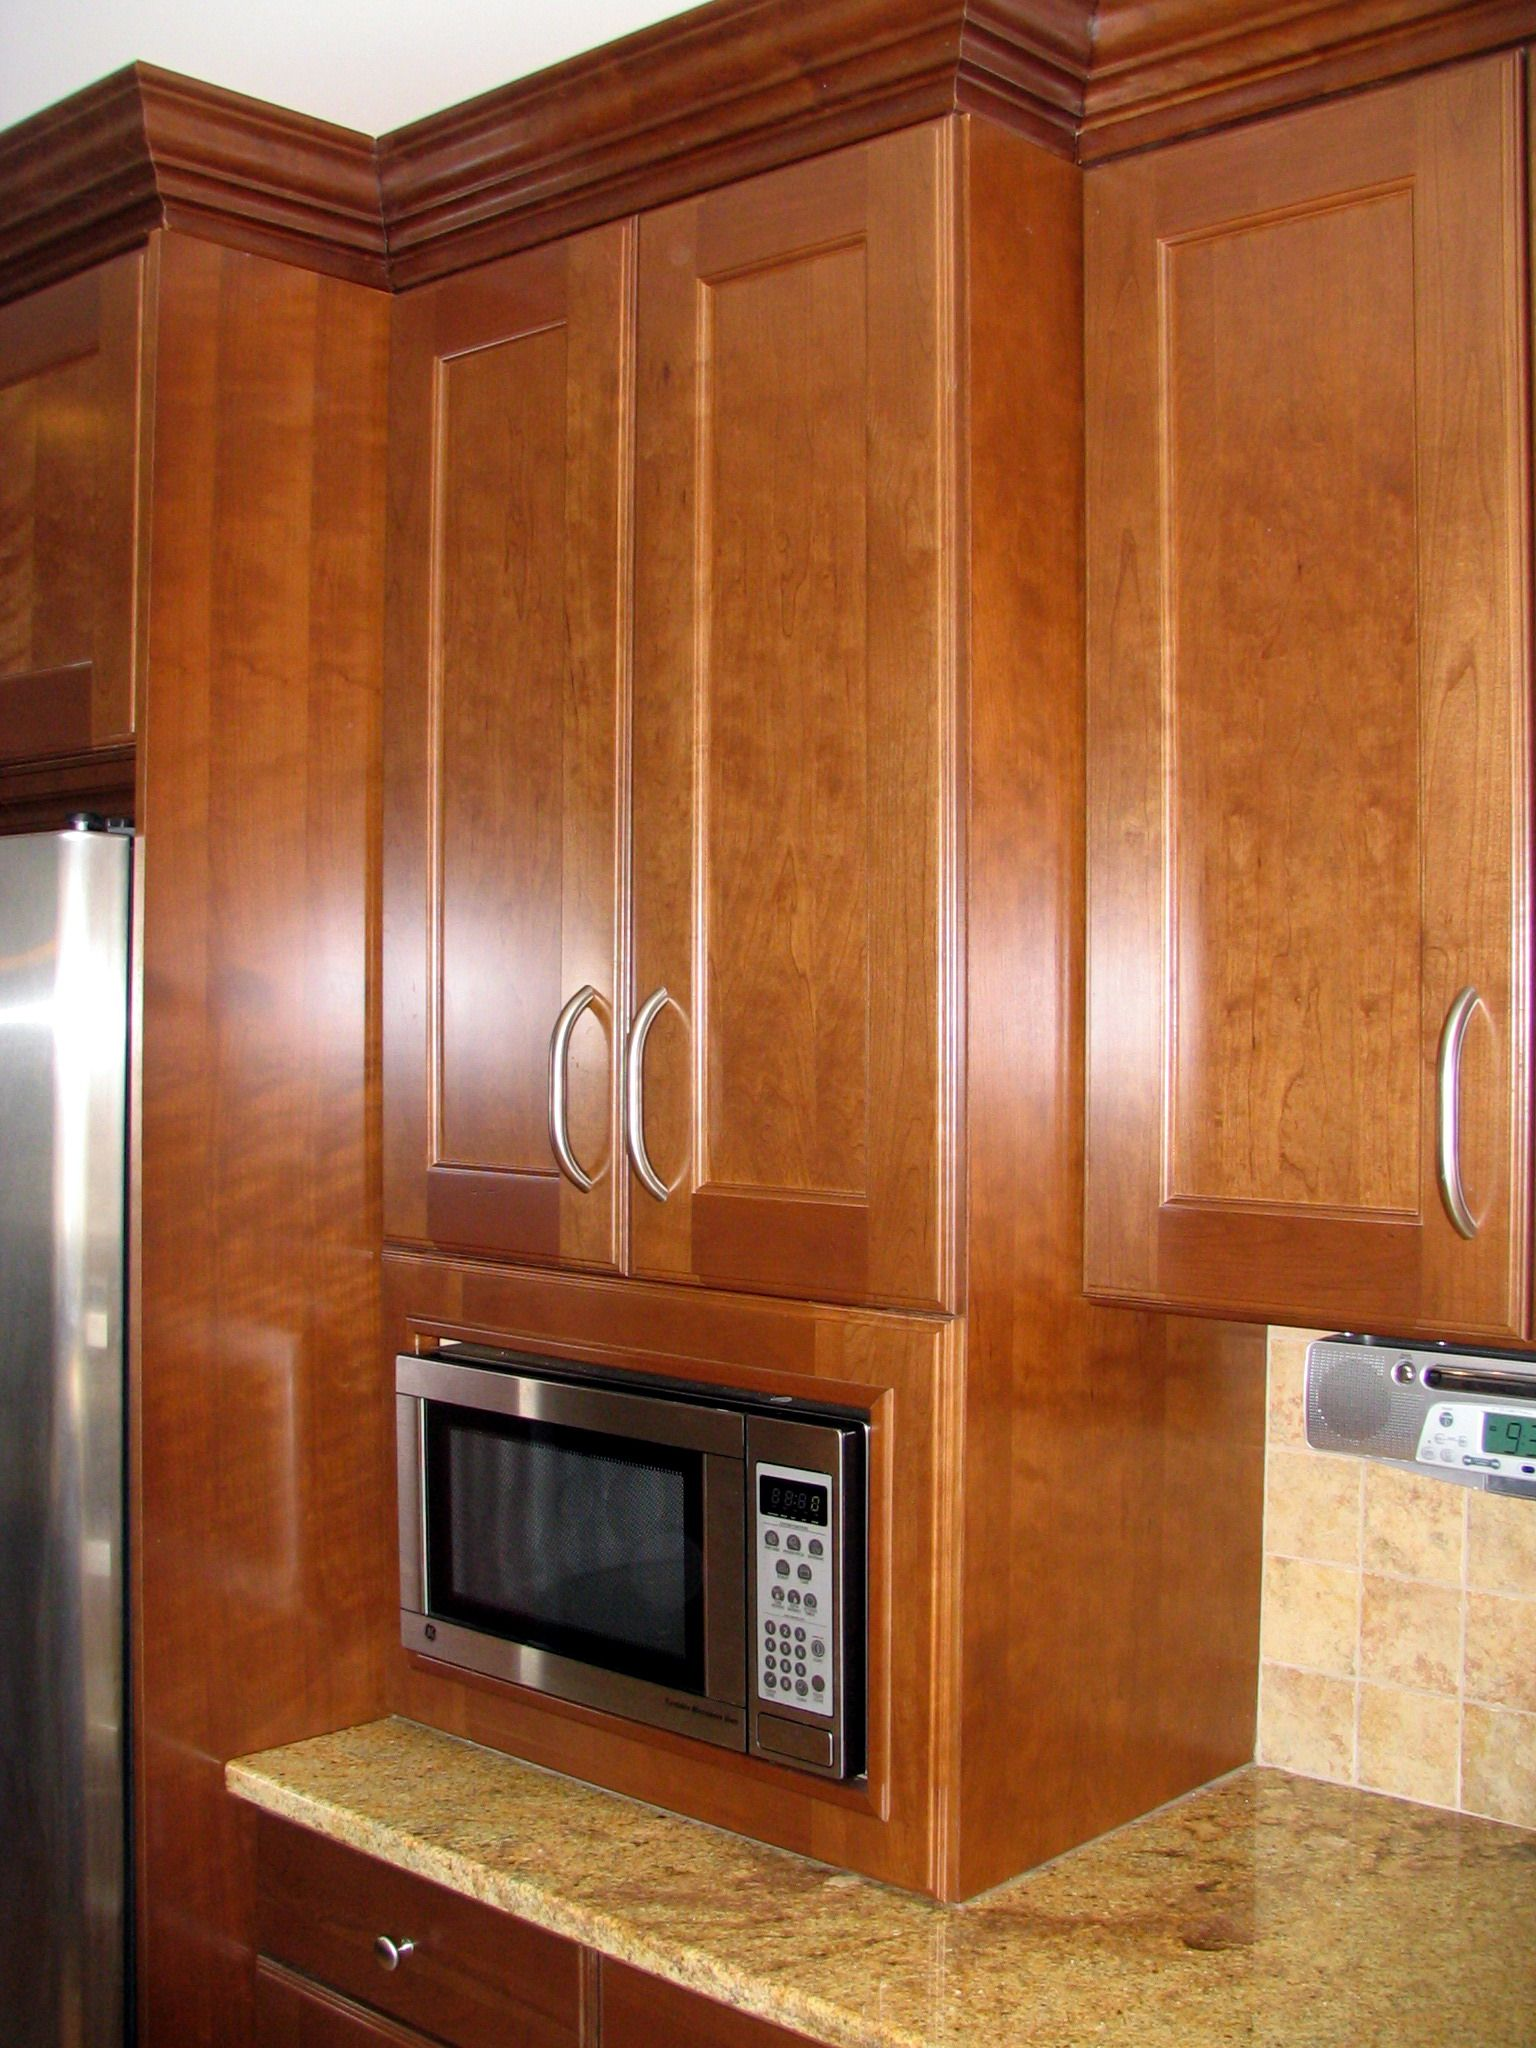 Built In Microwave Cabinet To Countertop This Is A Great Height For The Mw And Extra Depth Of Provides Pantry Like Storage